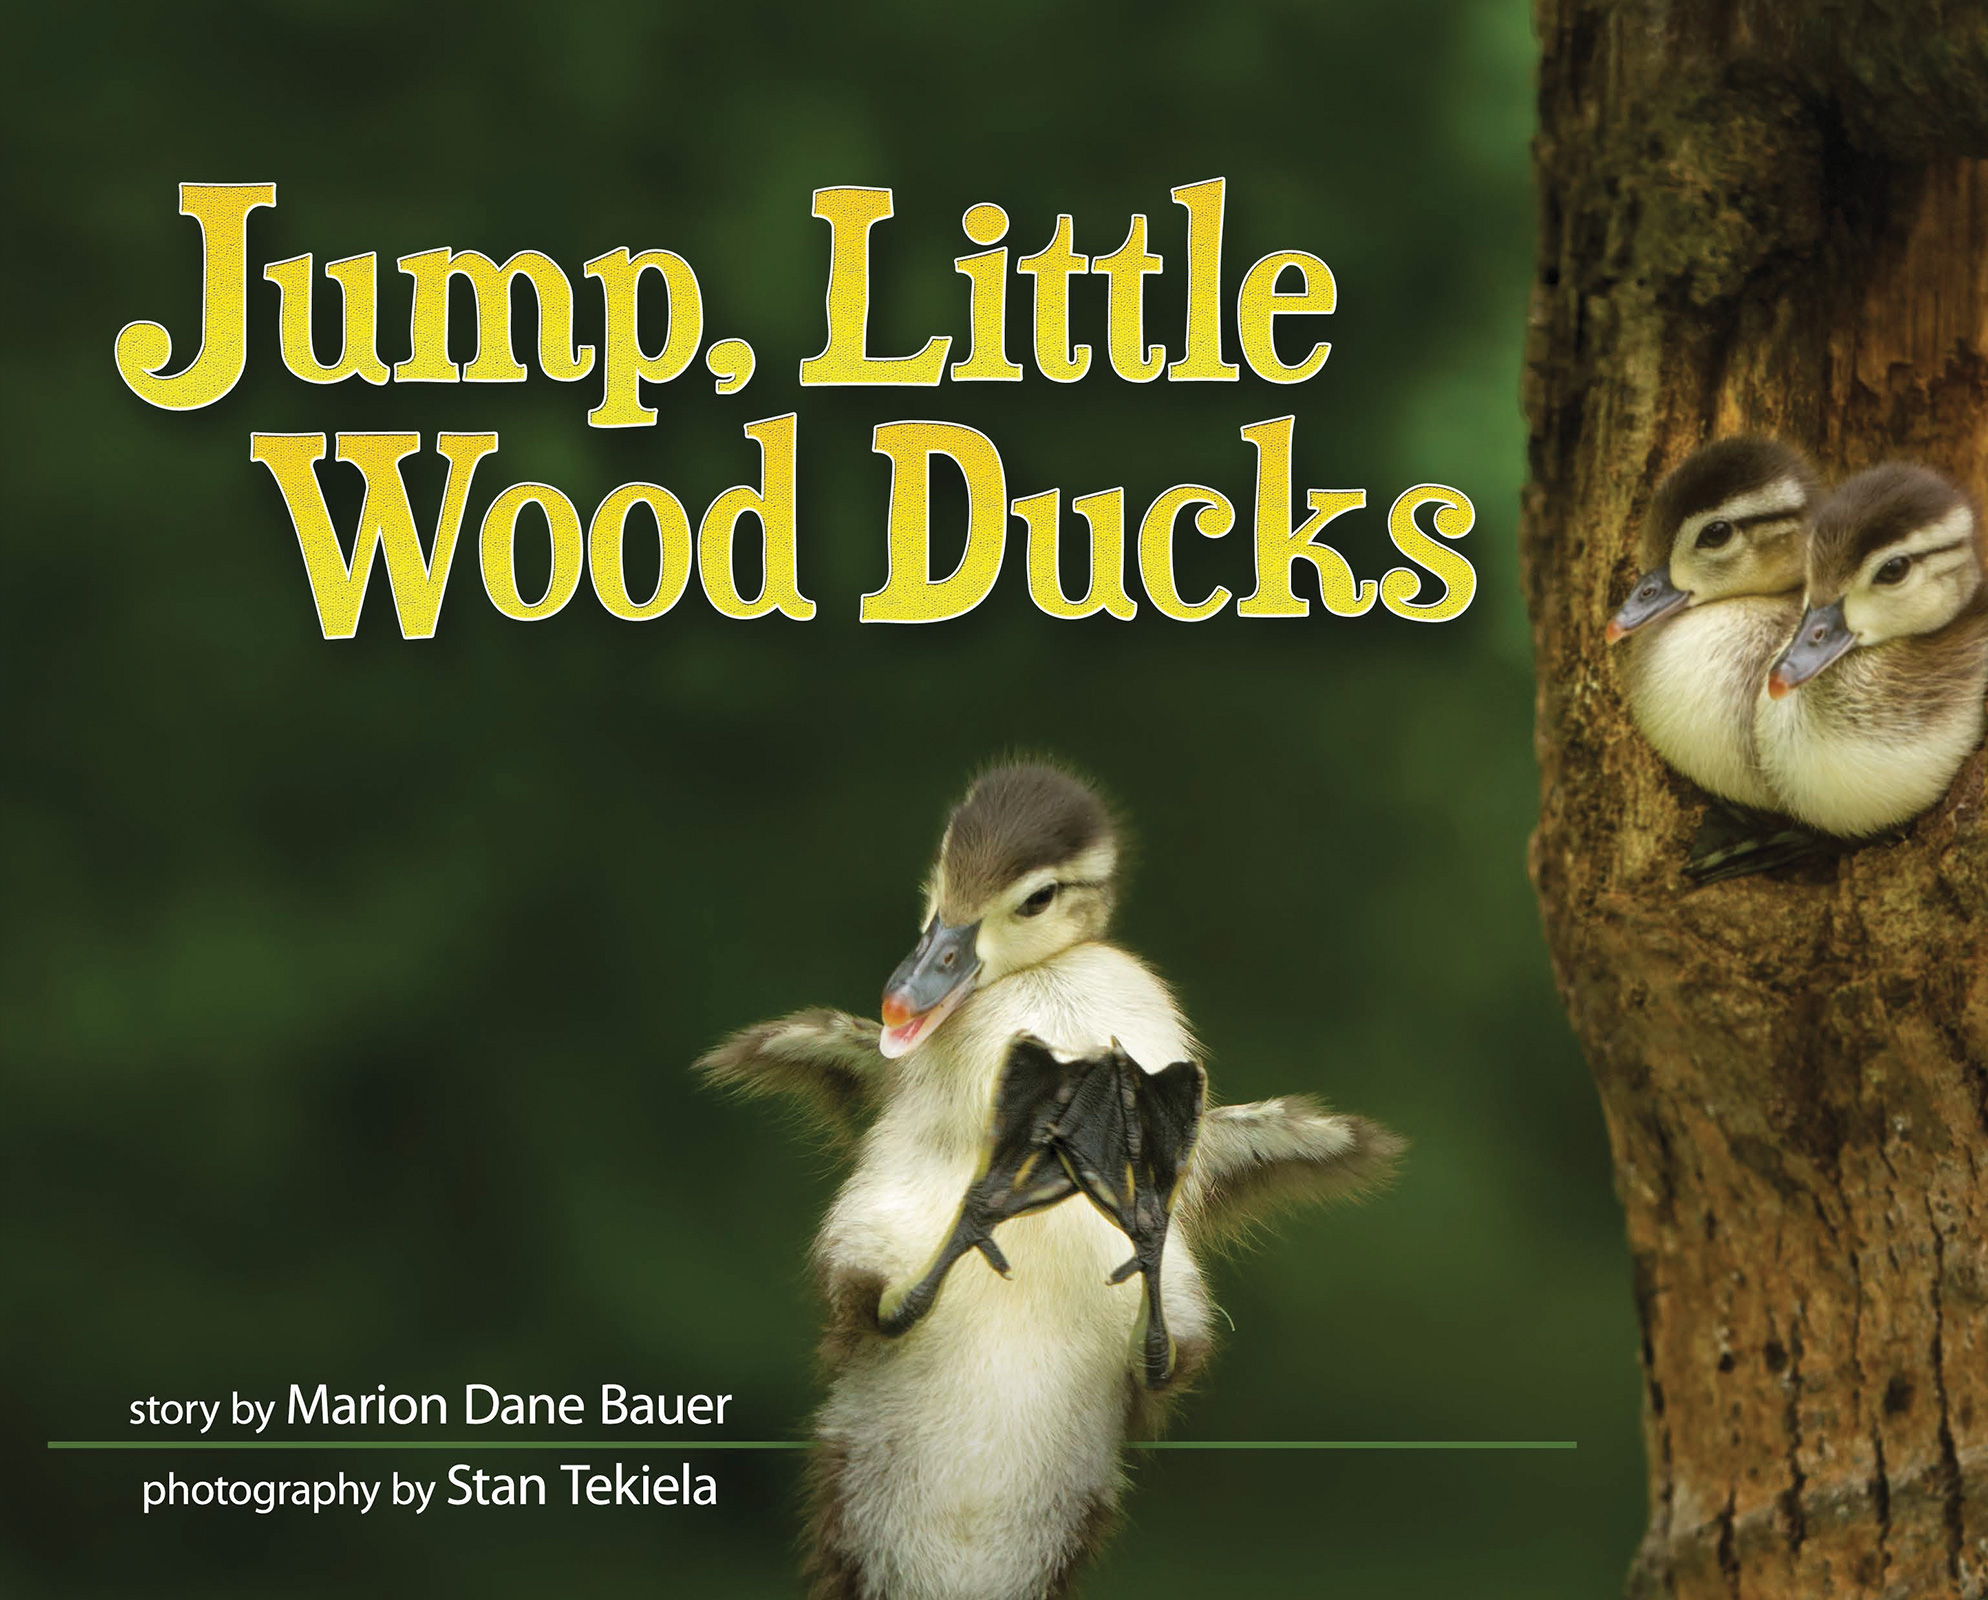 Jump, Little Wood Ducks